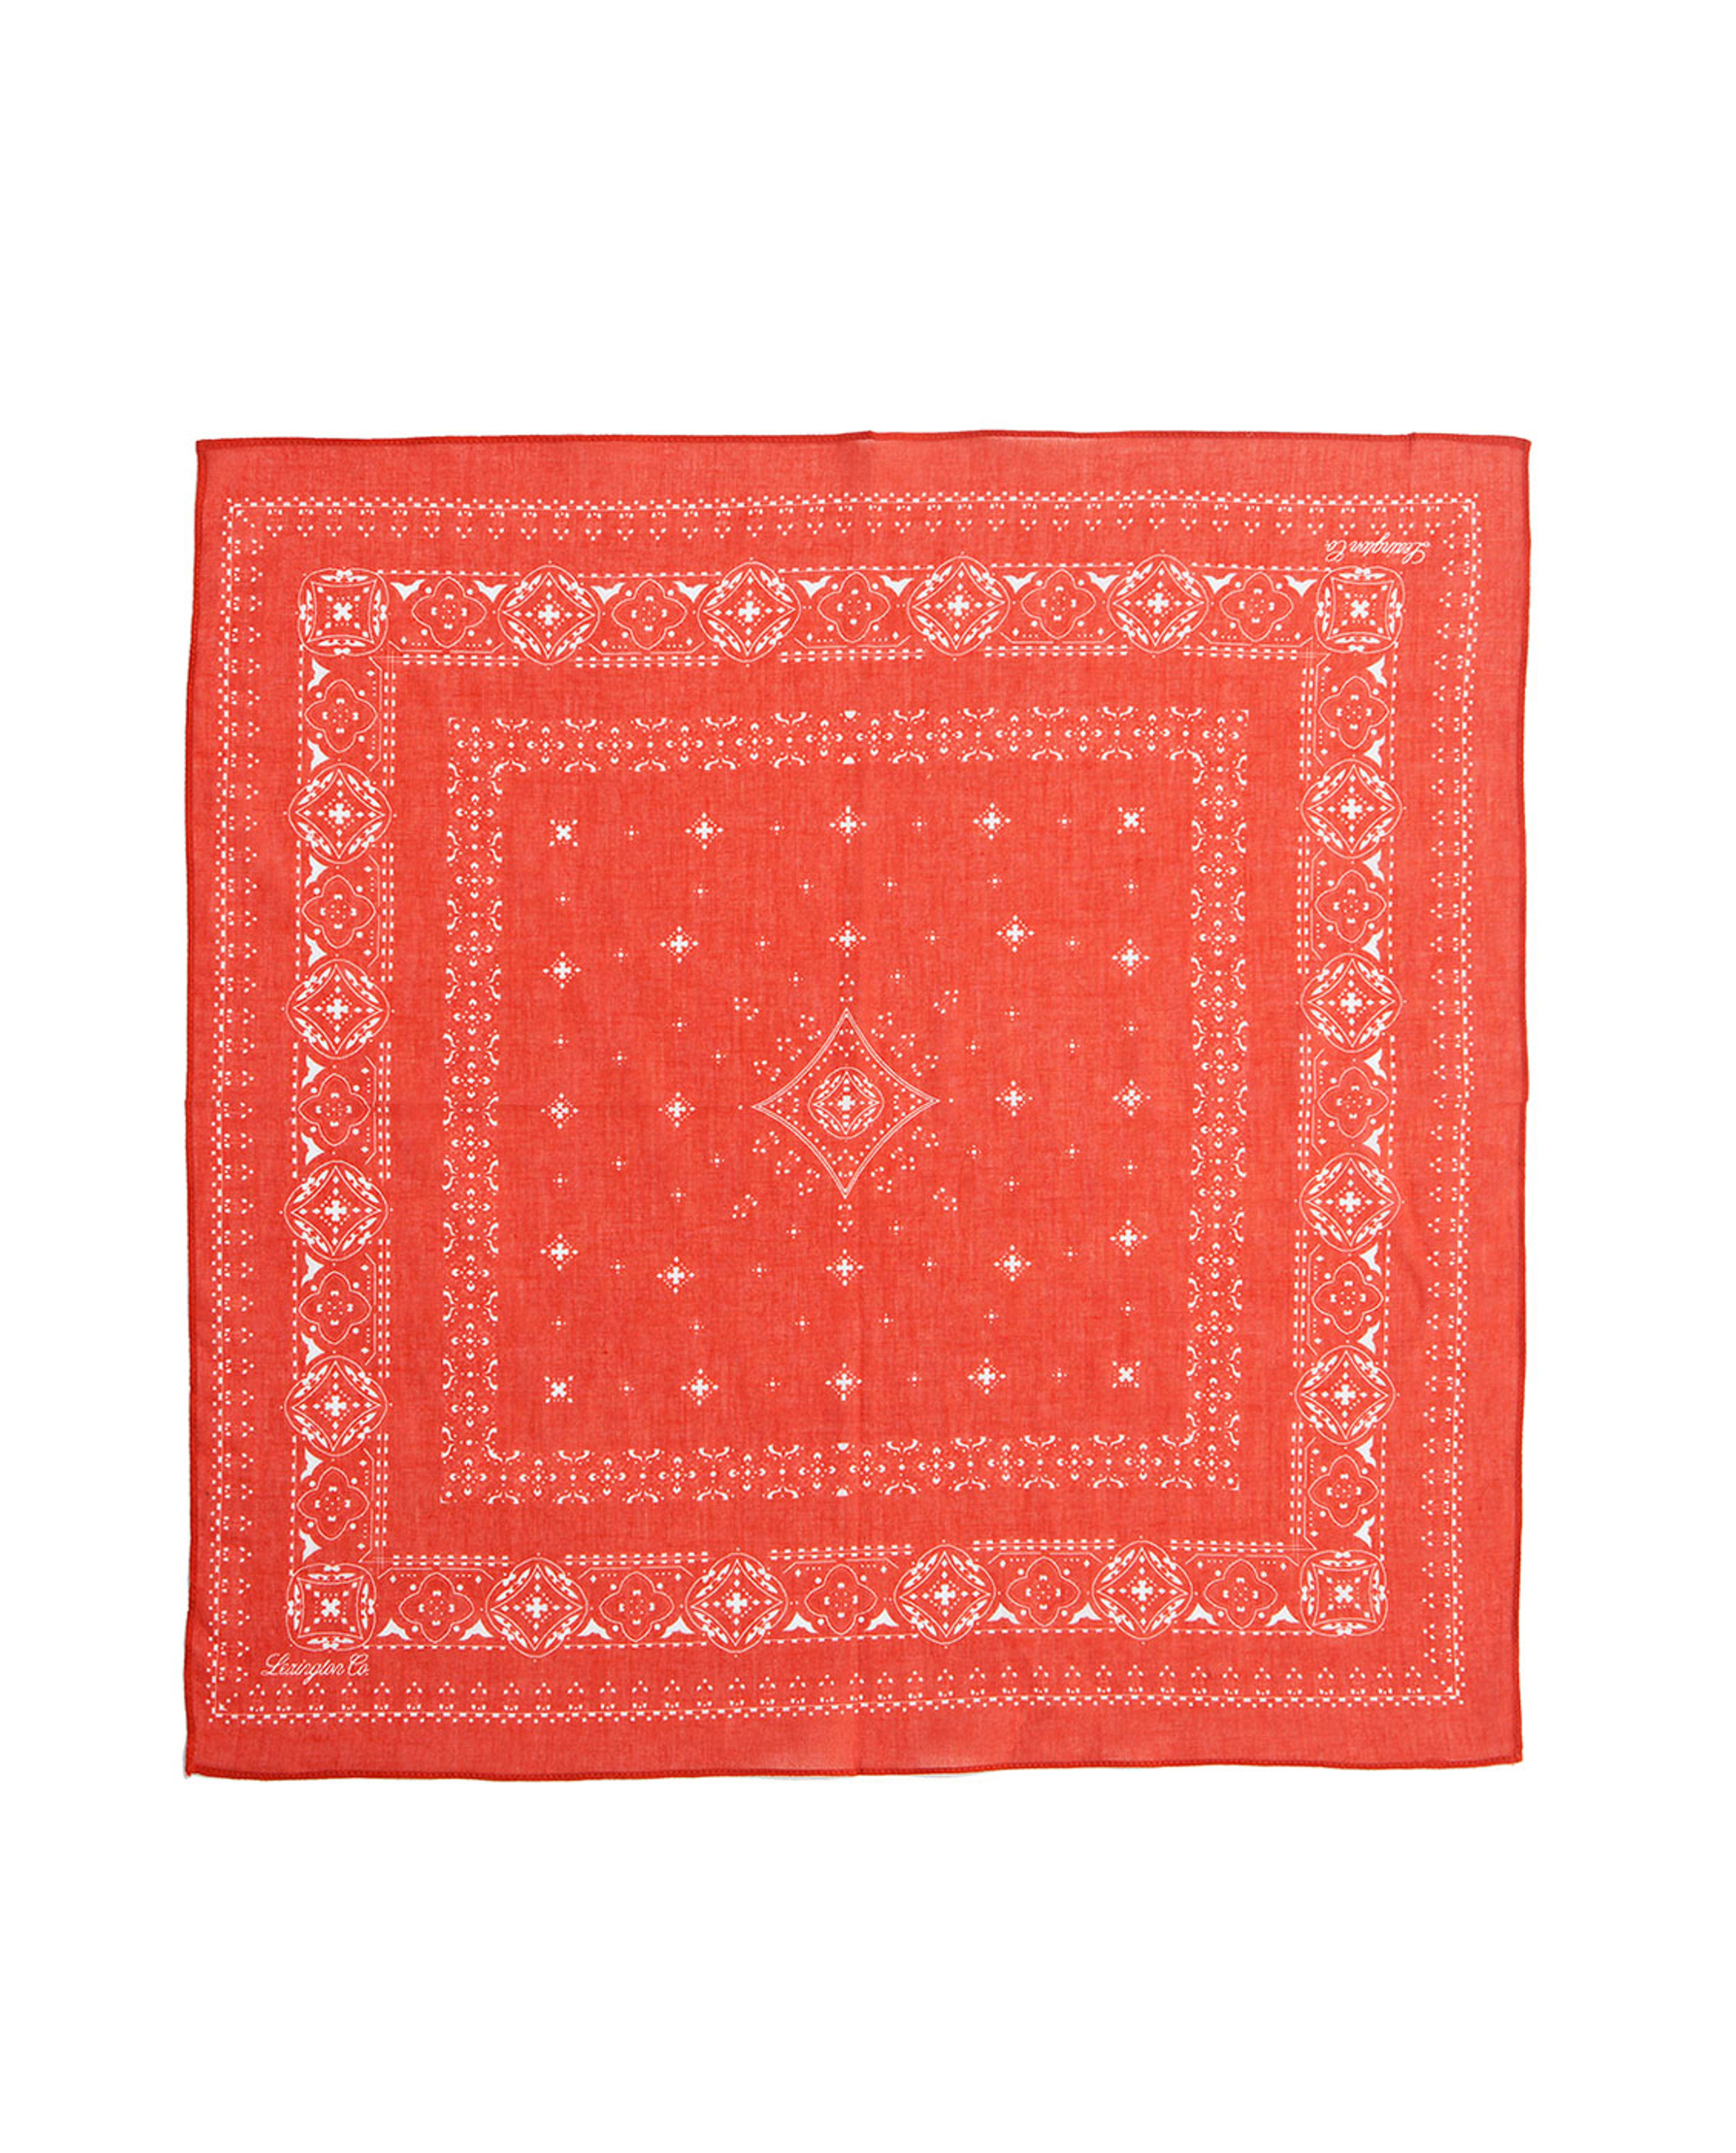 Elay Cotton Voile Scarf, Pompeian Red